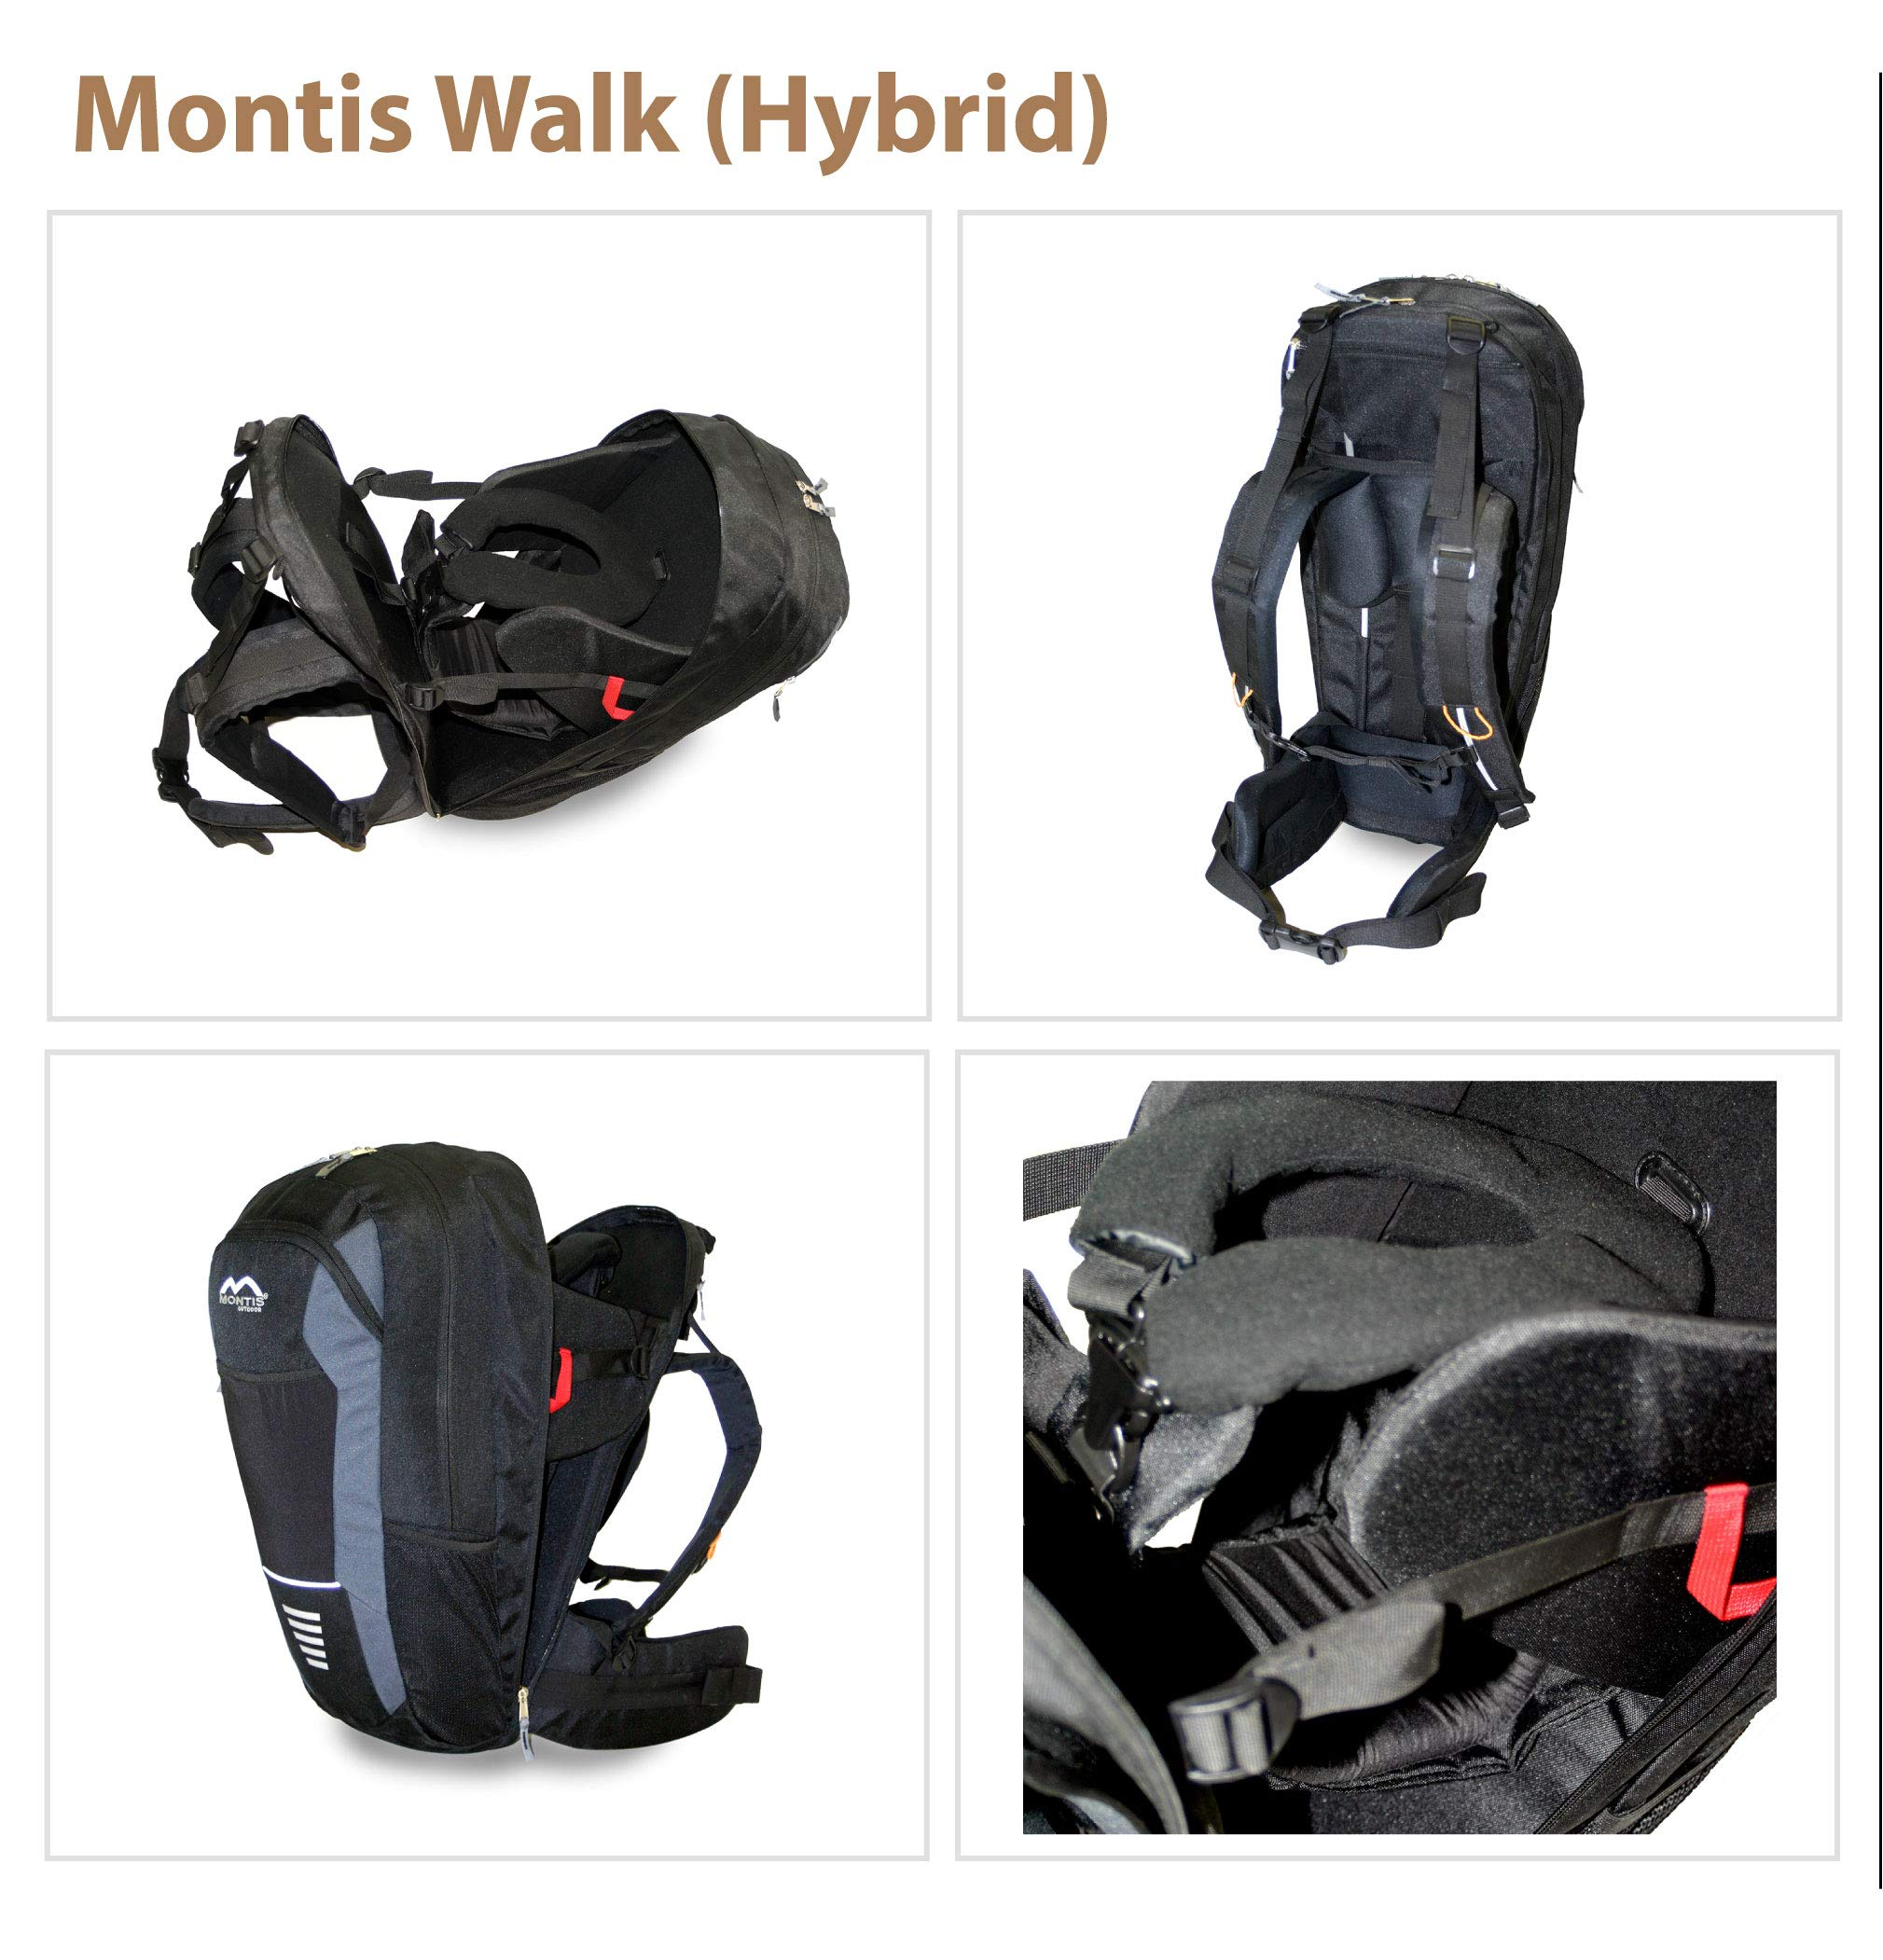 MONTIS WALK, back carrier, child carrier, backpack up to 15kg M MONTIS OUTDOOR 61cm high, 28cm wide; 20 litres; approx. 1850 grams Combination backpack and child carrier, up to 15 kg 3-point safety belt for children 6